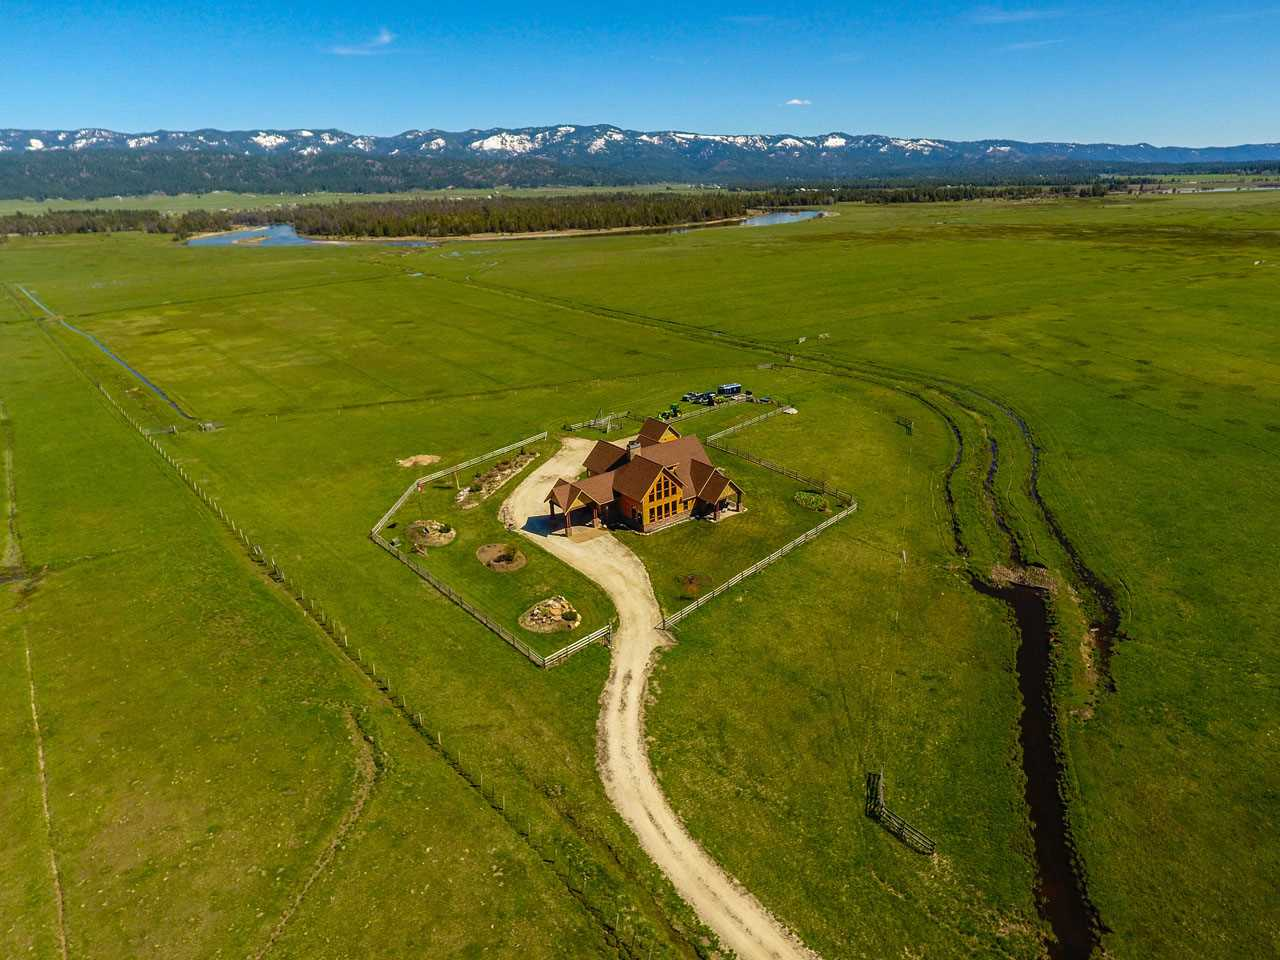 Single Family Home for Sale at 814 Cabarton 814 Cabarton Cascade, Idaho 83611